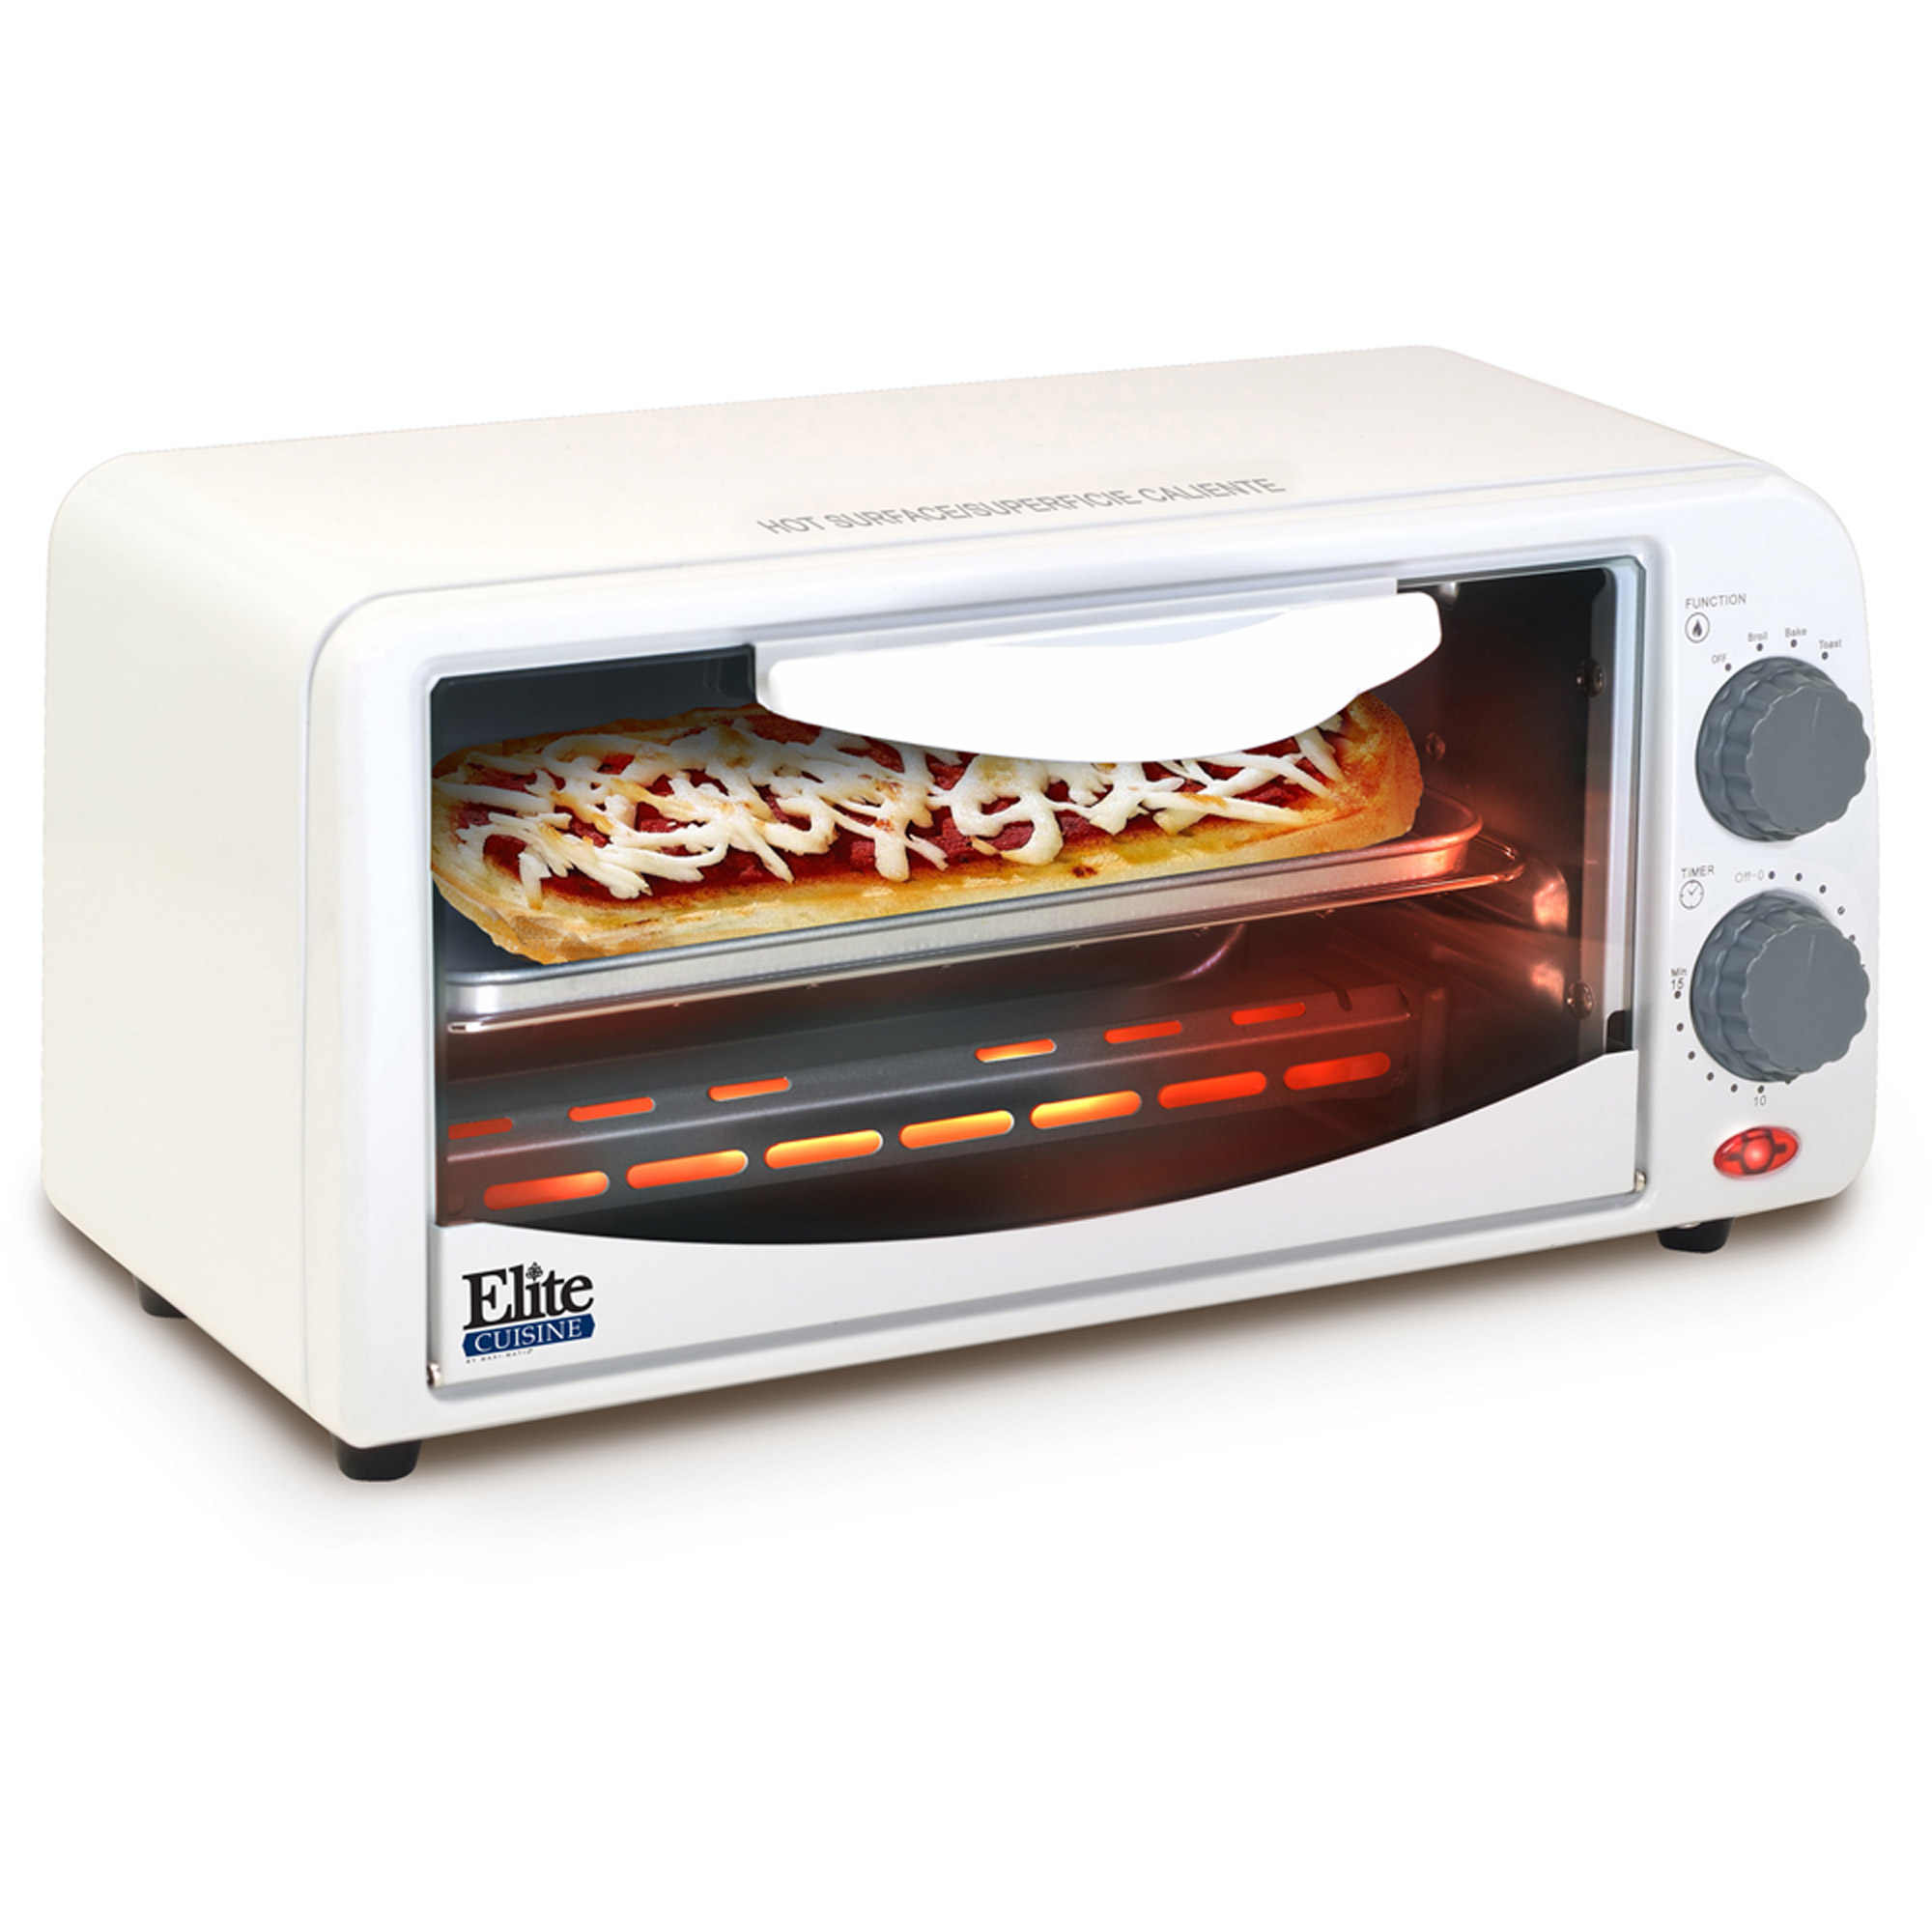 Elite Cuisine ETO-113 2-Slice Toaster Oven with Broiler and Timer, White